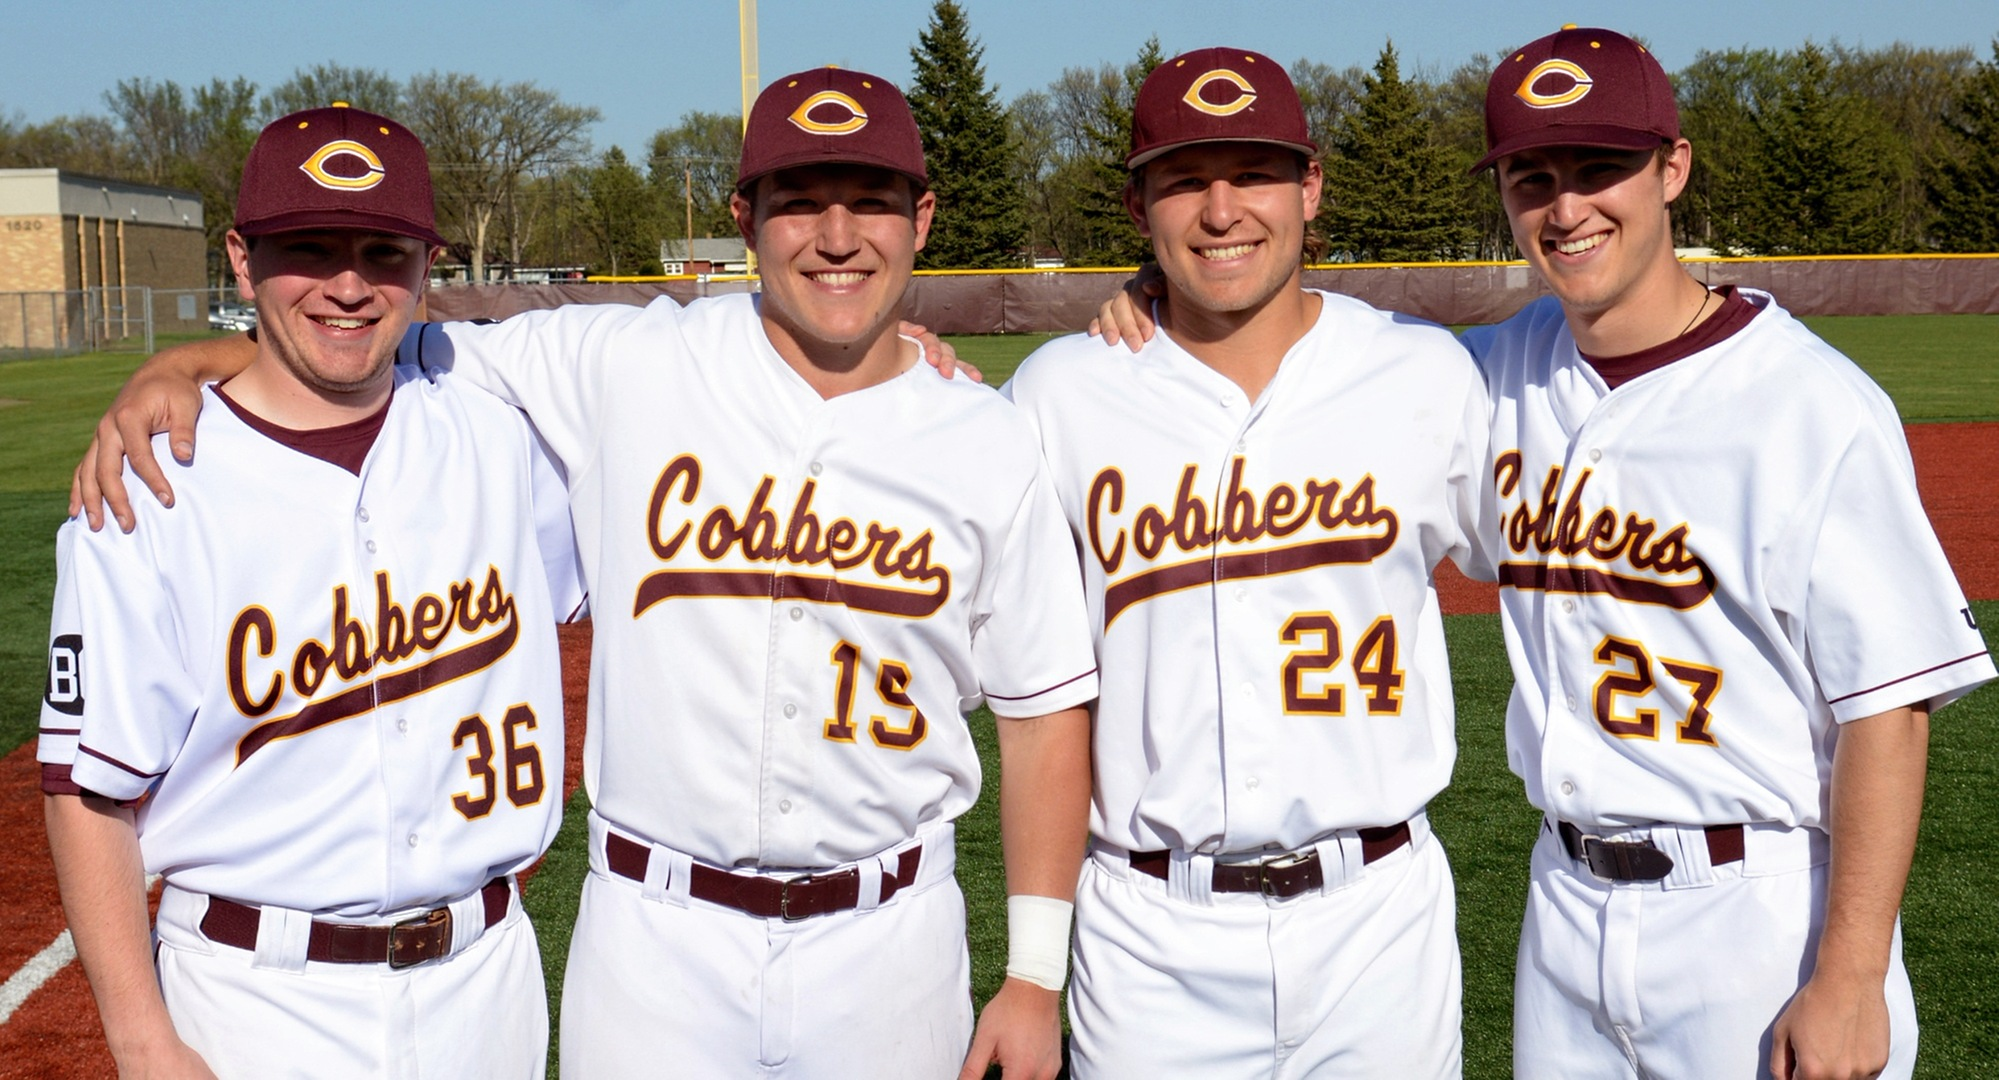 The Cobber seniors (L-R) Nate Hinkemeyer, Cody Rahman, Joe Hallock and Grant Vagle were honored before the doubleheader with St. John's.